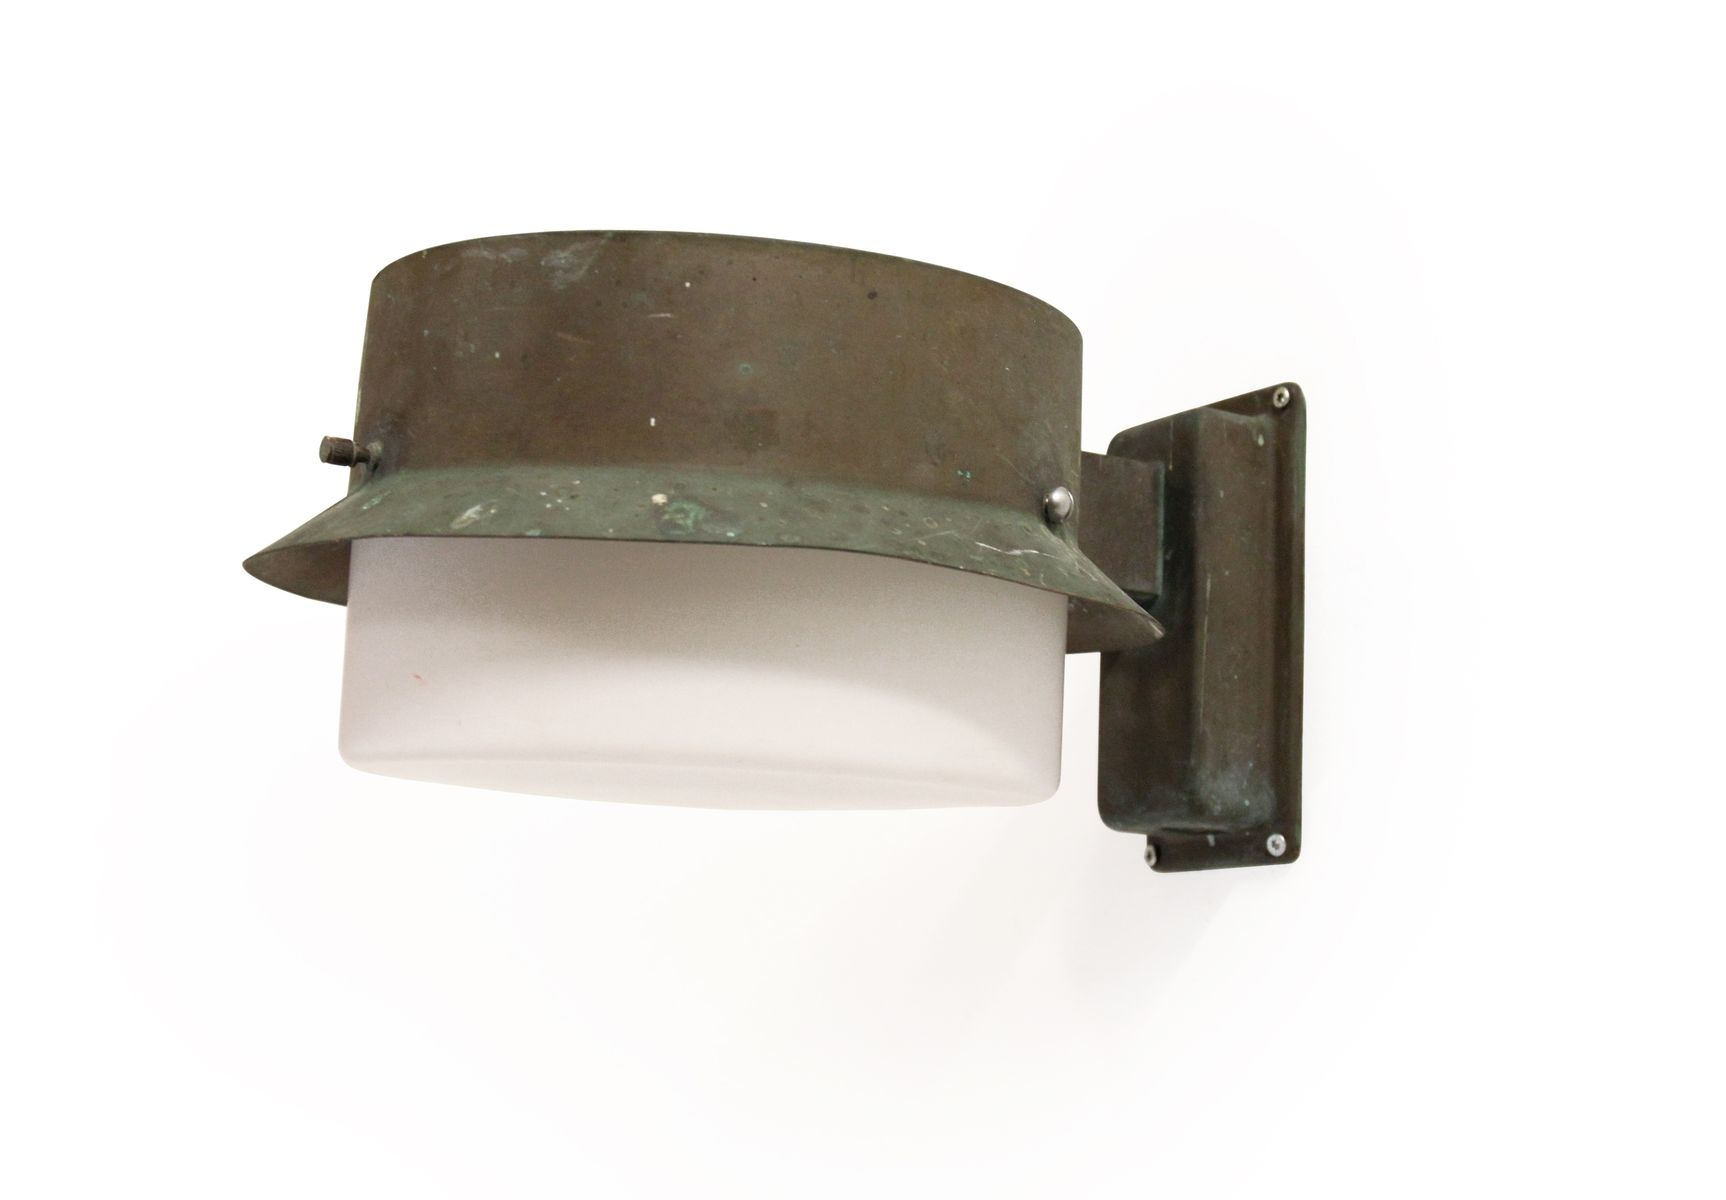 Copper outdoor wall light by falkenbergs belysning ab 1960s for copper outdoor wall light by falkenbergs belysning ab 1960s for sale at pamono arubaitofo Choice Image